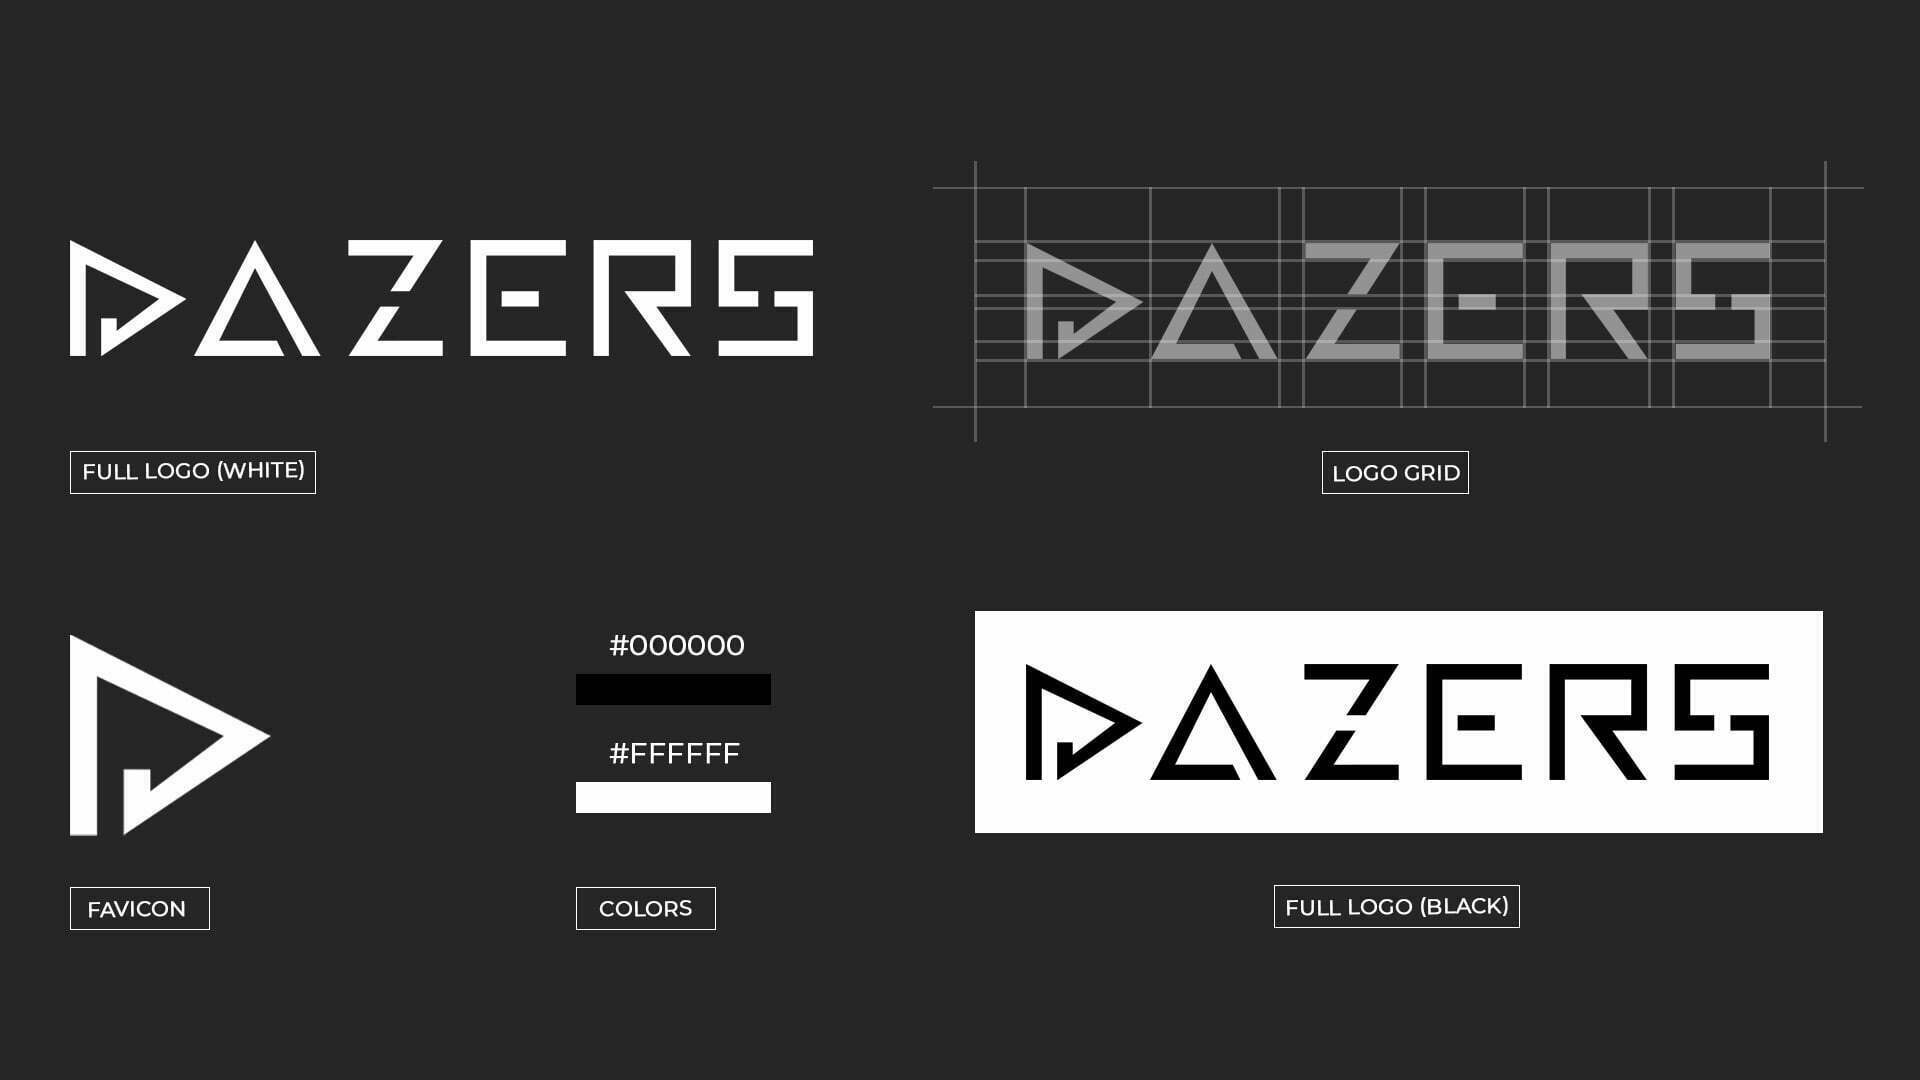 Pixelwish, Design, Dazers, Logo, Structure